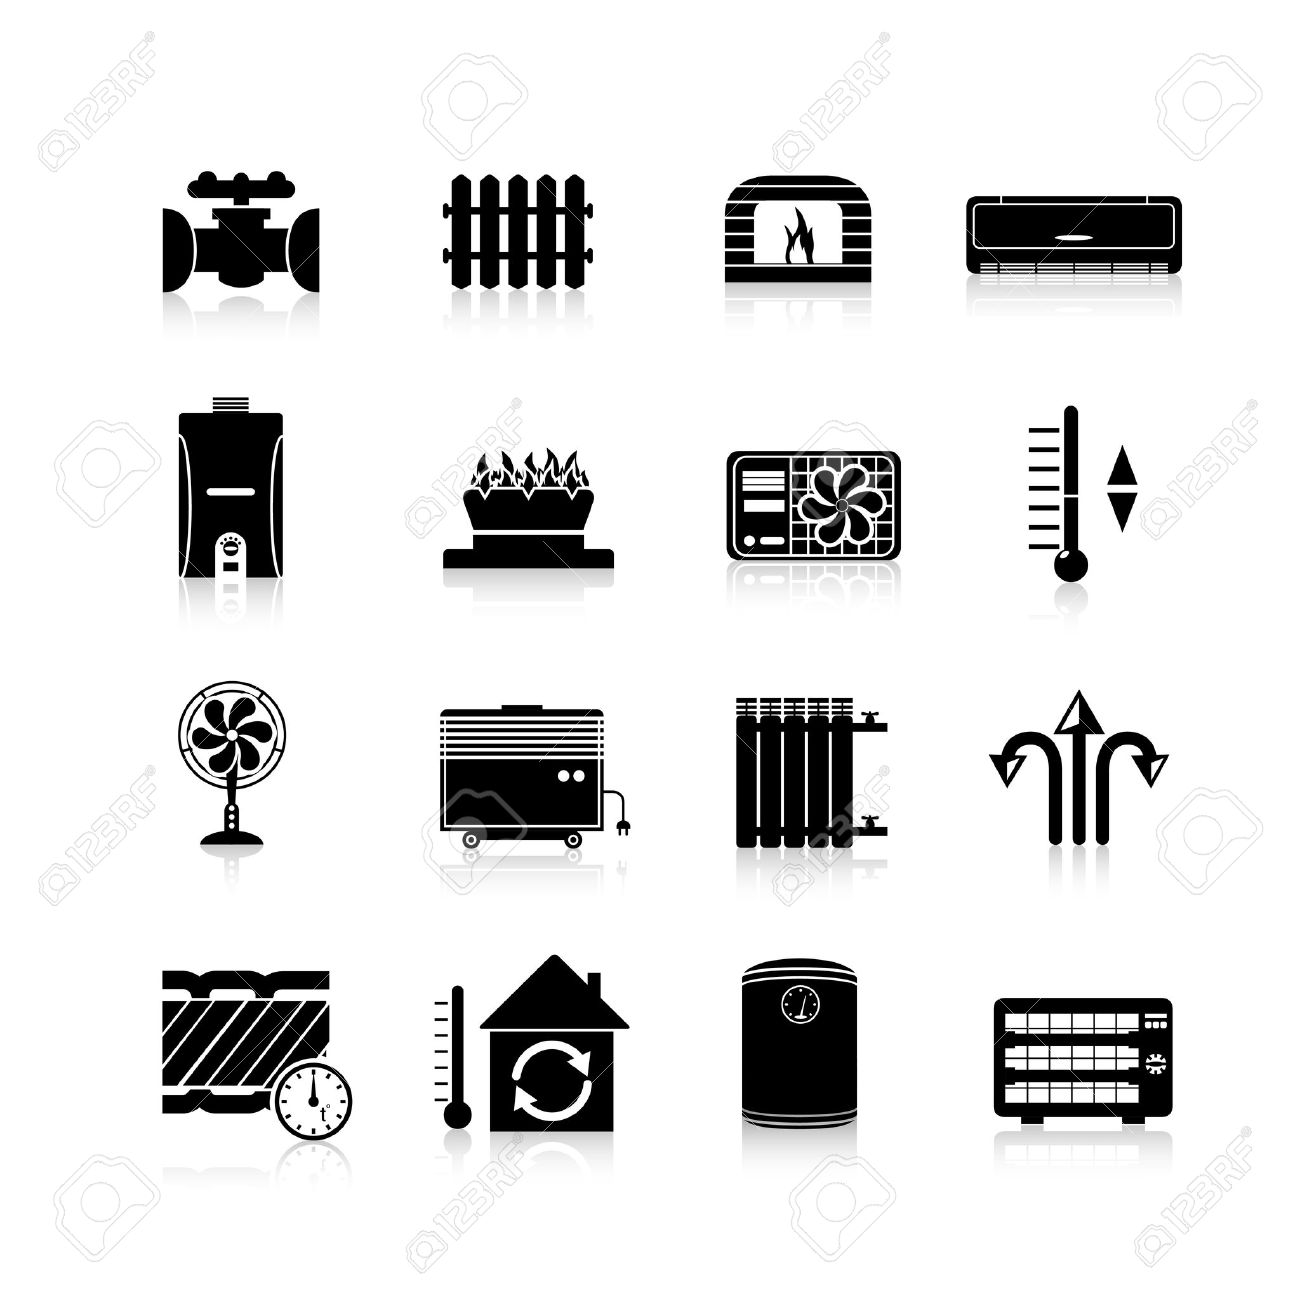 heating cooling icon. heating icons black set with heat and cooling household system symbols isolated vector illustration stock icon